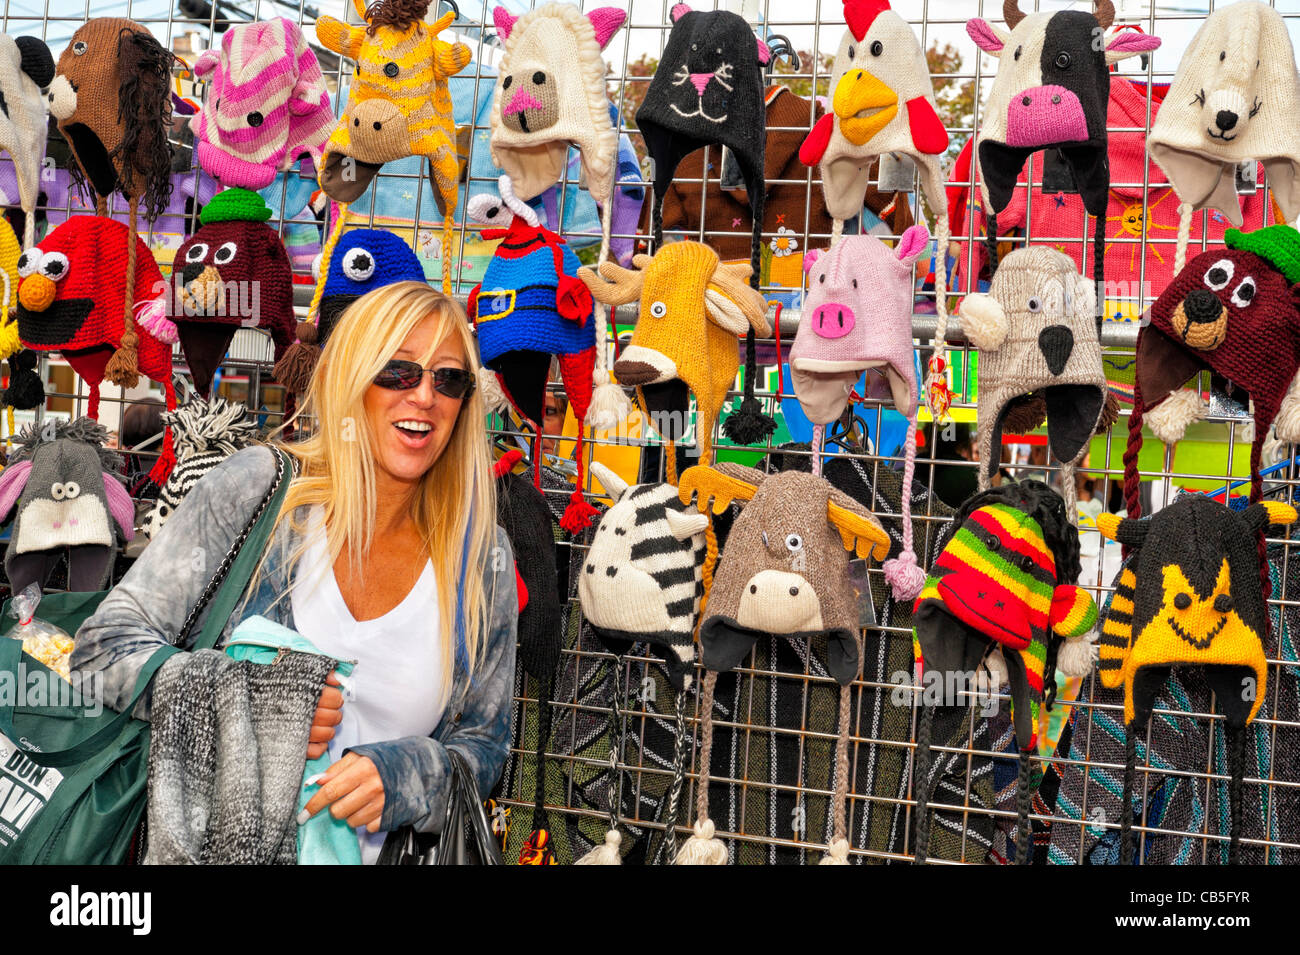 OCTOBER 22, 2011 - MERRICK, NY: Young woman looks at colorful animal knit hats on racks at booth, Merrick Street - Stock Image